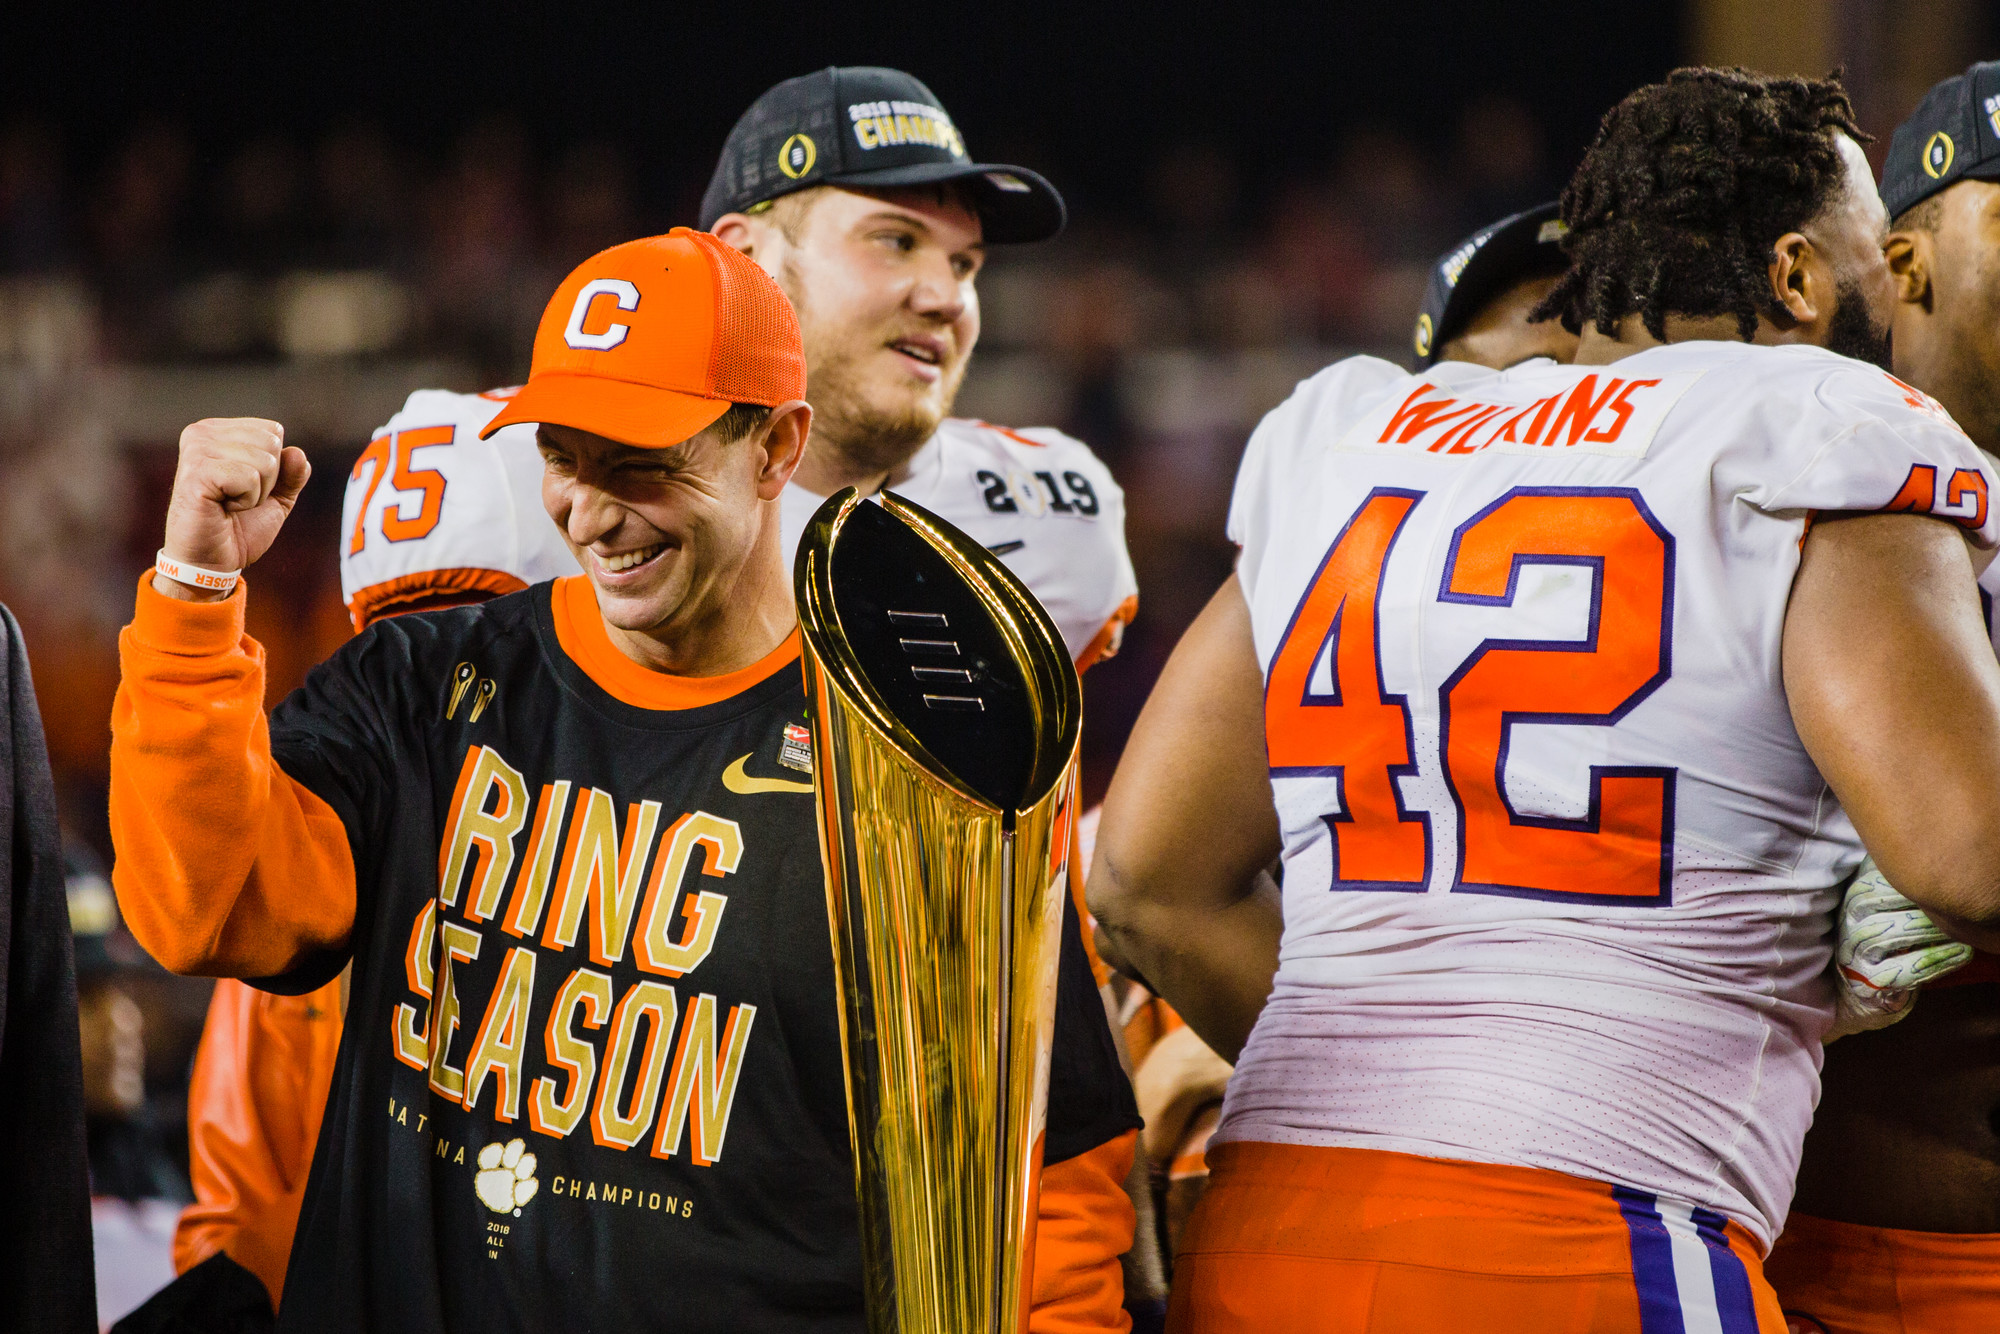 Clemson head coach Dabo Swinney celebrates with the trophy at Levi's Stadium after the Tigers routed Alabama to win the 2019 CFP National Championship in Santa Clara, California, on Monday, Jan. 7.